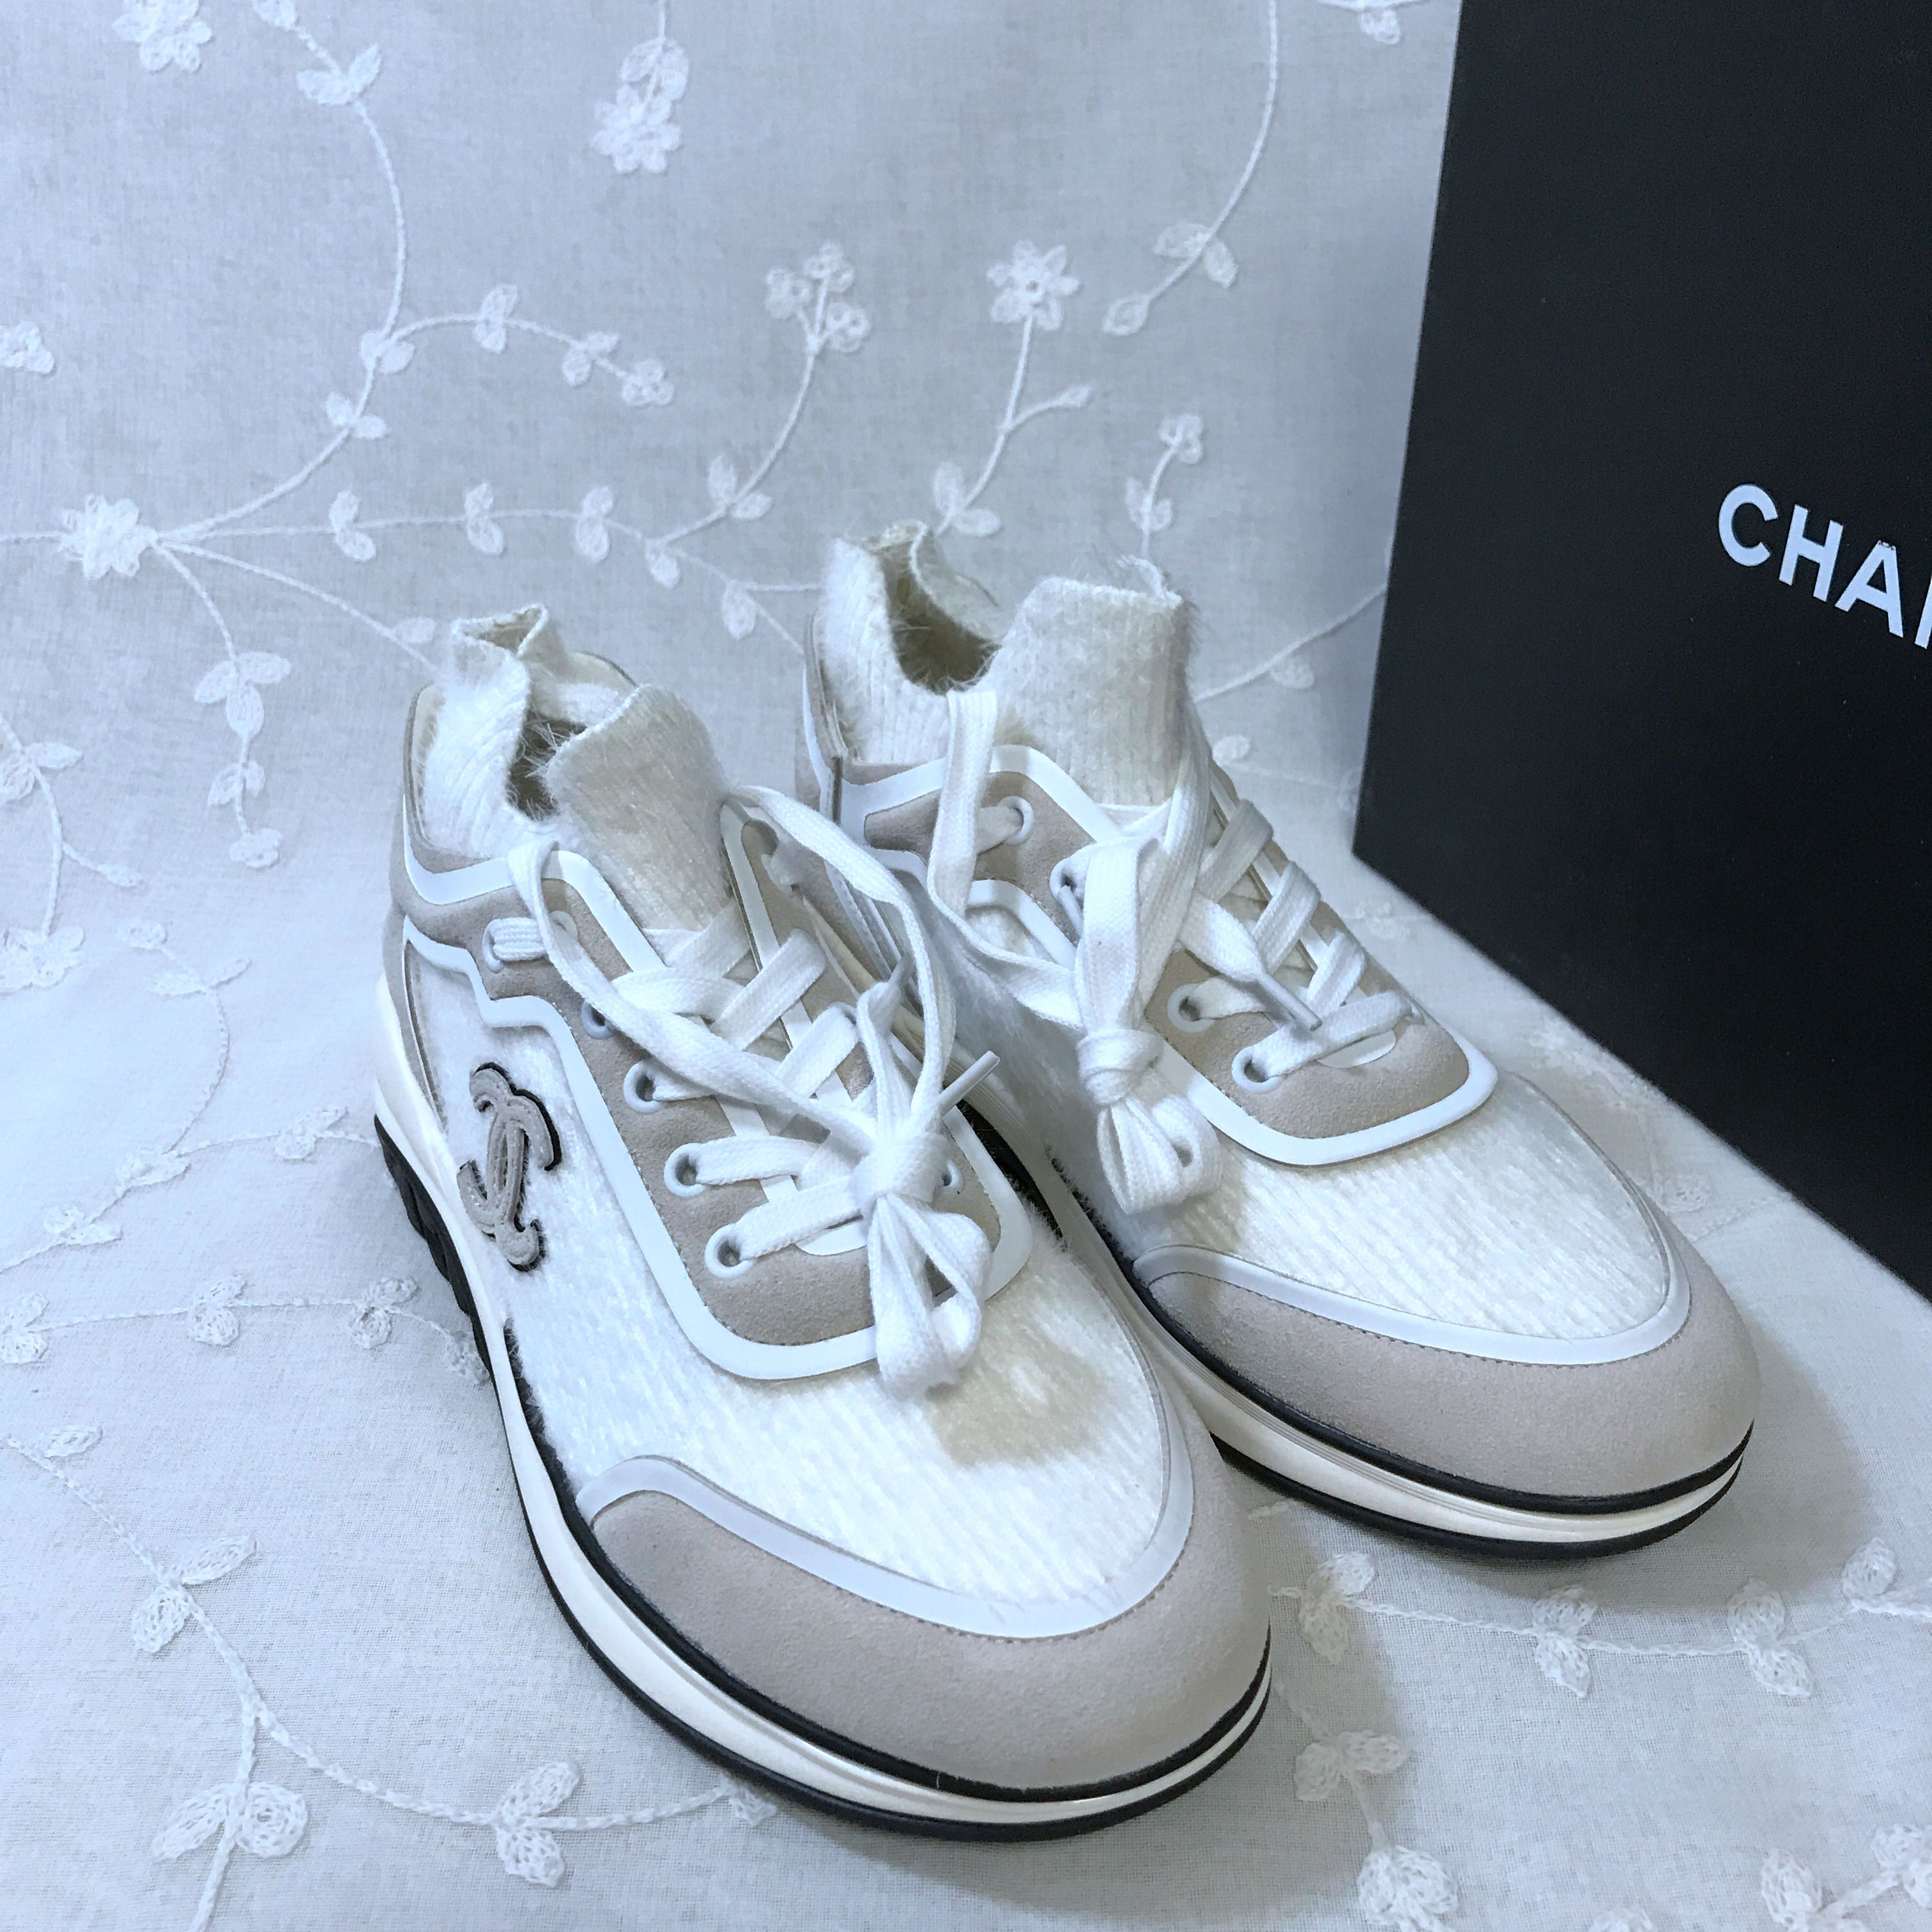 Chanel Casual Shoes